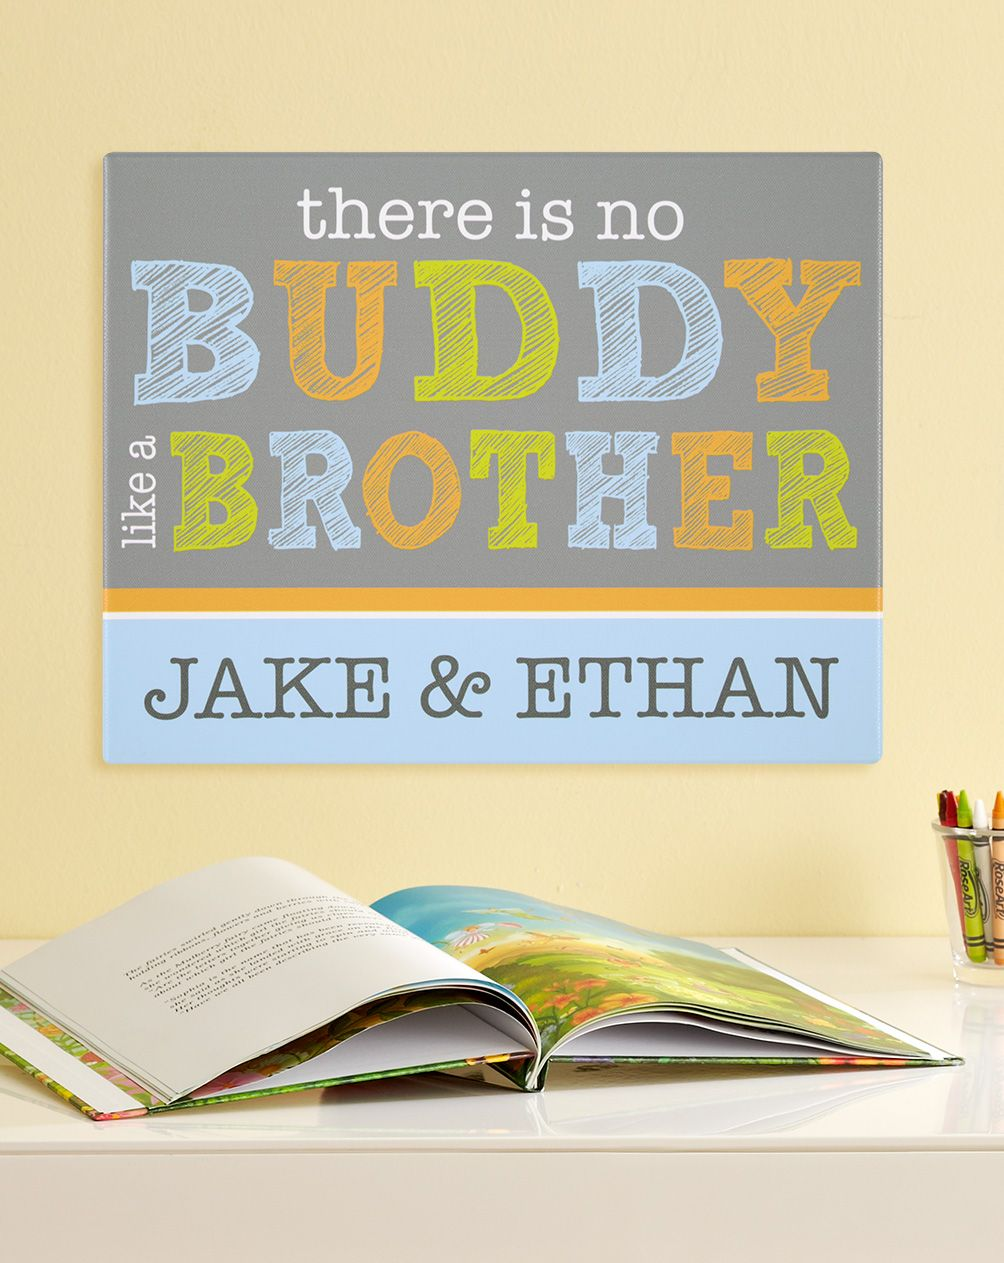 Like a Brother Canvas Artwork | Canvas artwork and Canvases